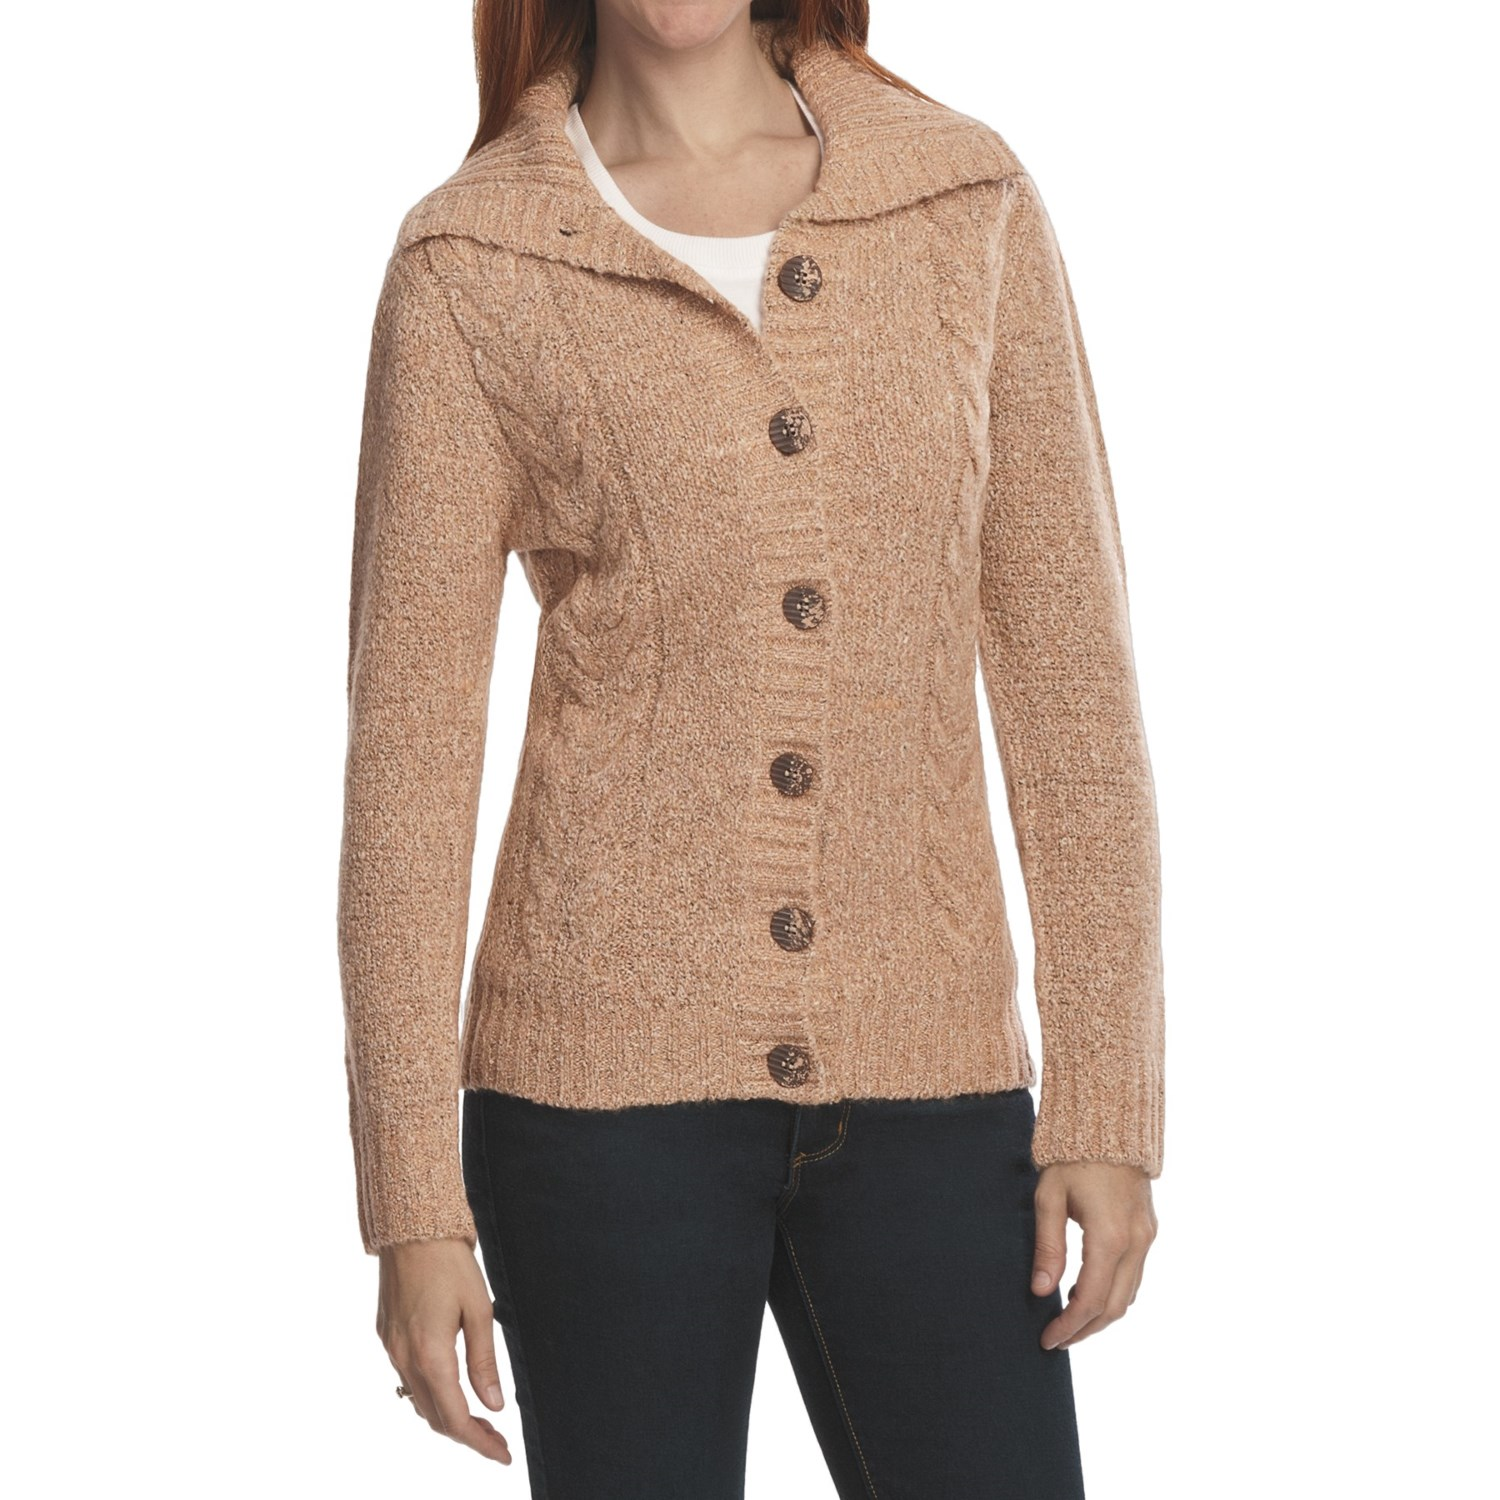 Shop our outlet women's sweaters for the latest savings at the Sundance Catalog! Find sale and clearance pricing for a variety of artisan and romantic styles.